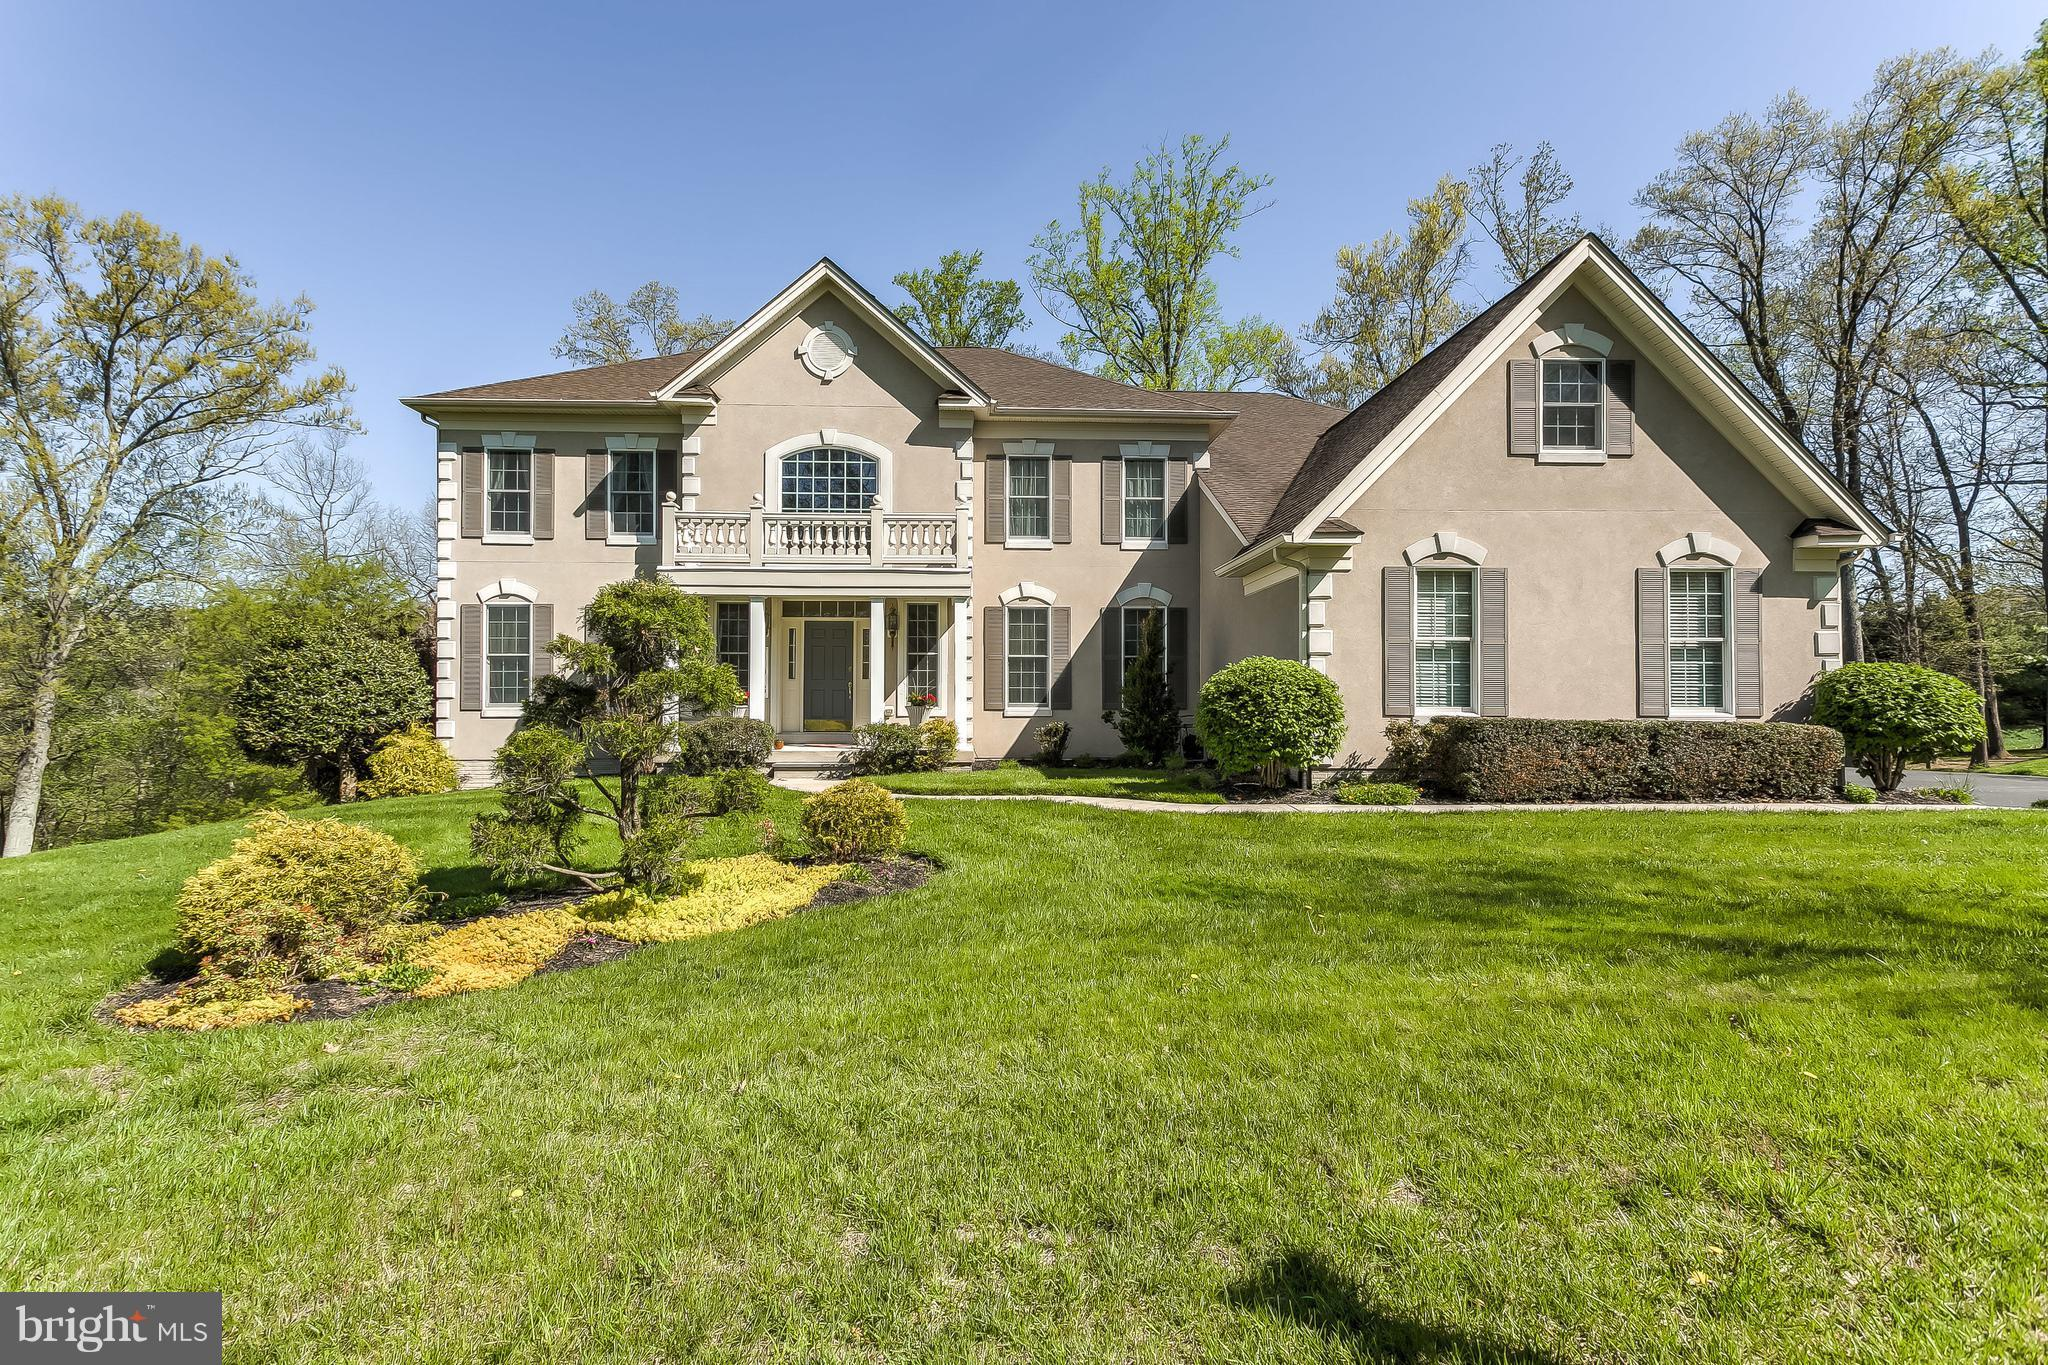 406 BUEDEL COURT, SPARKS, MD 21152